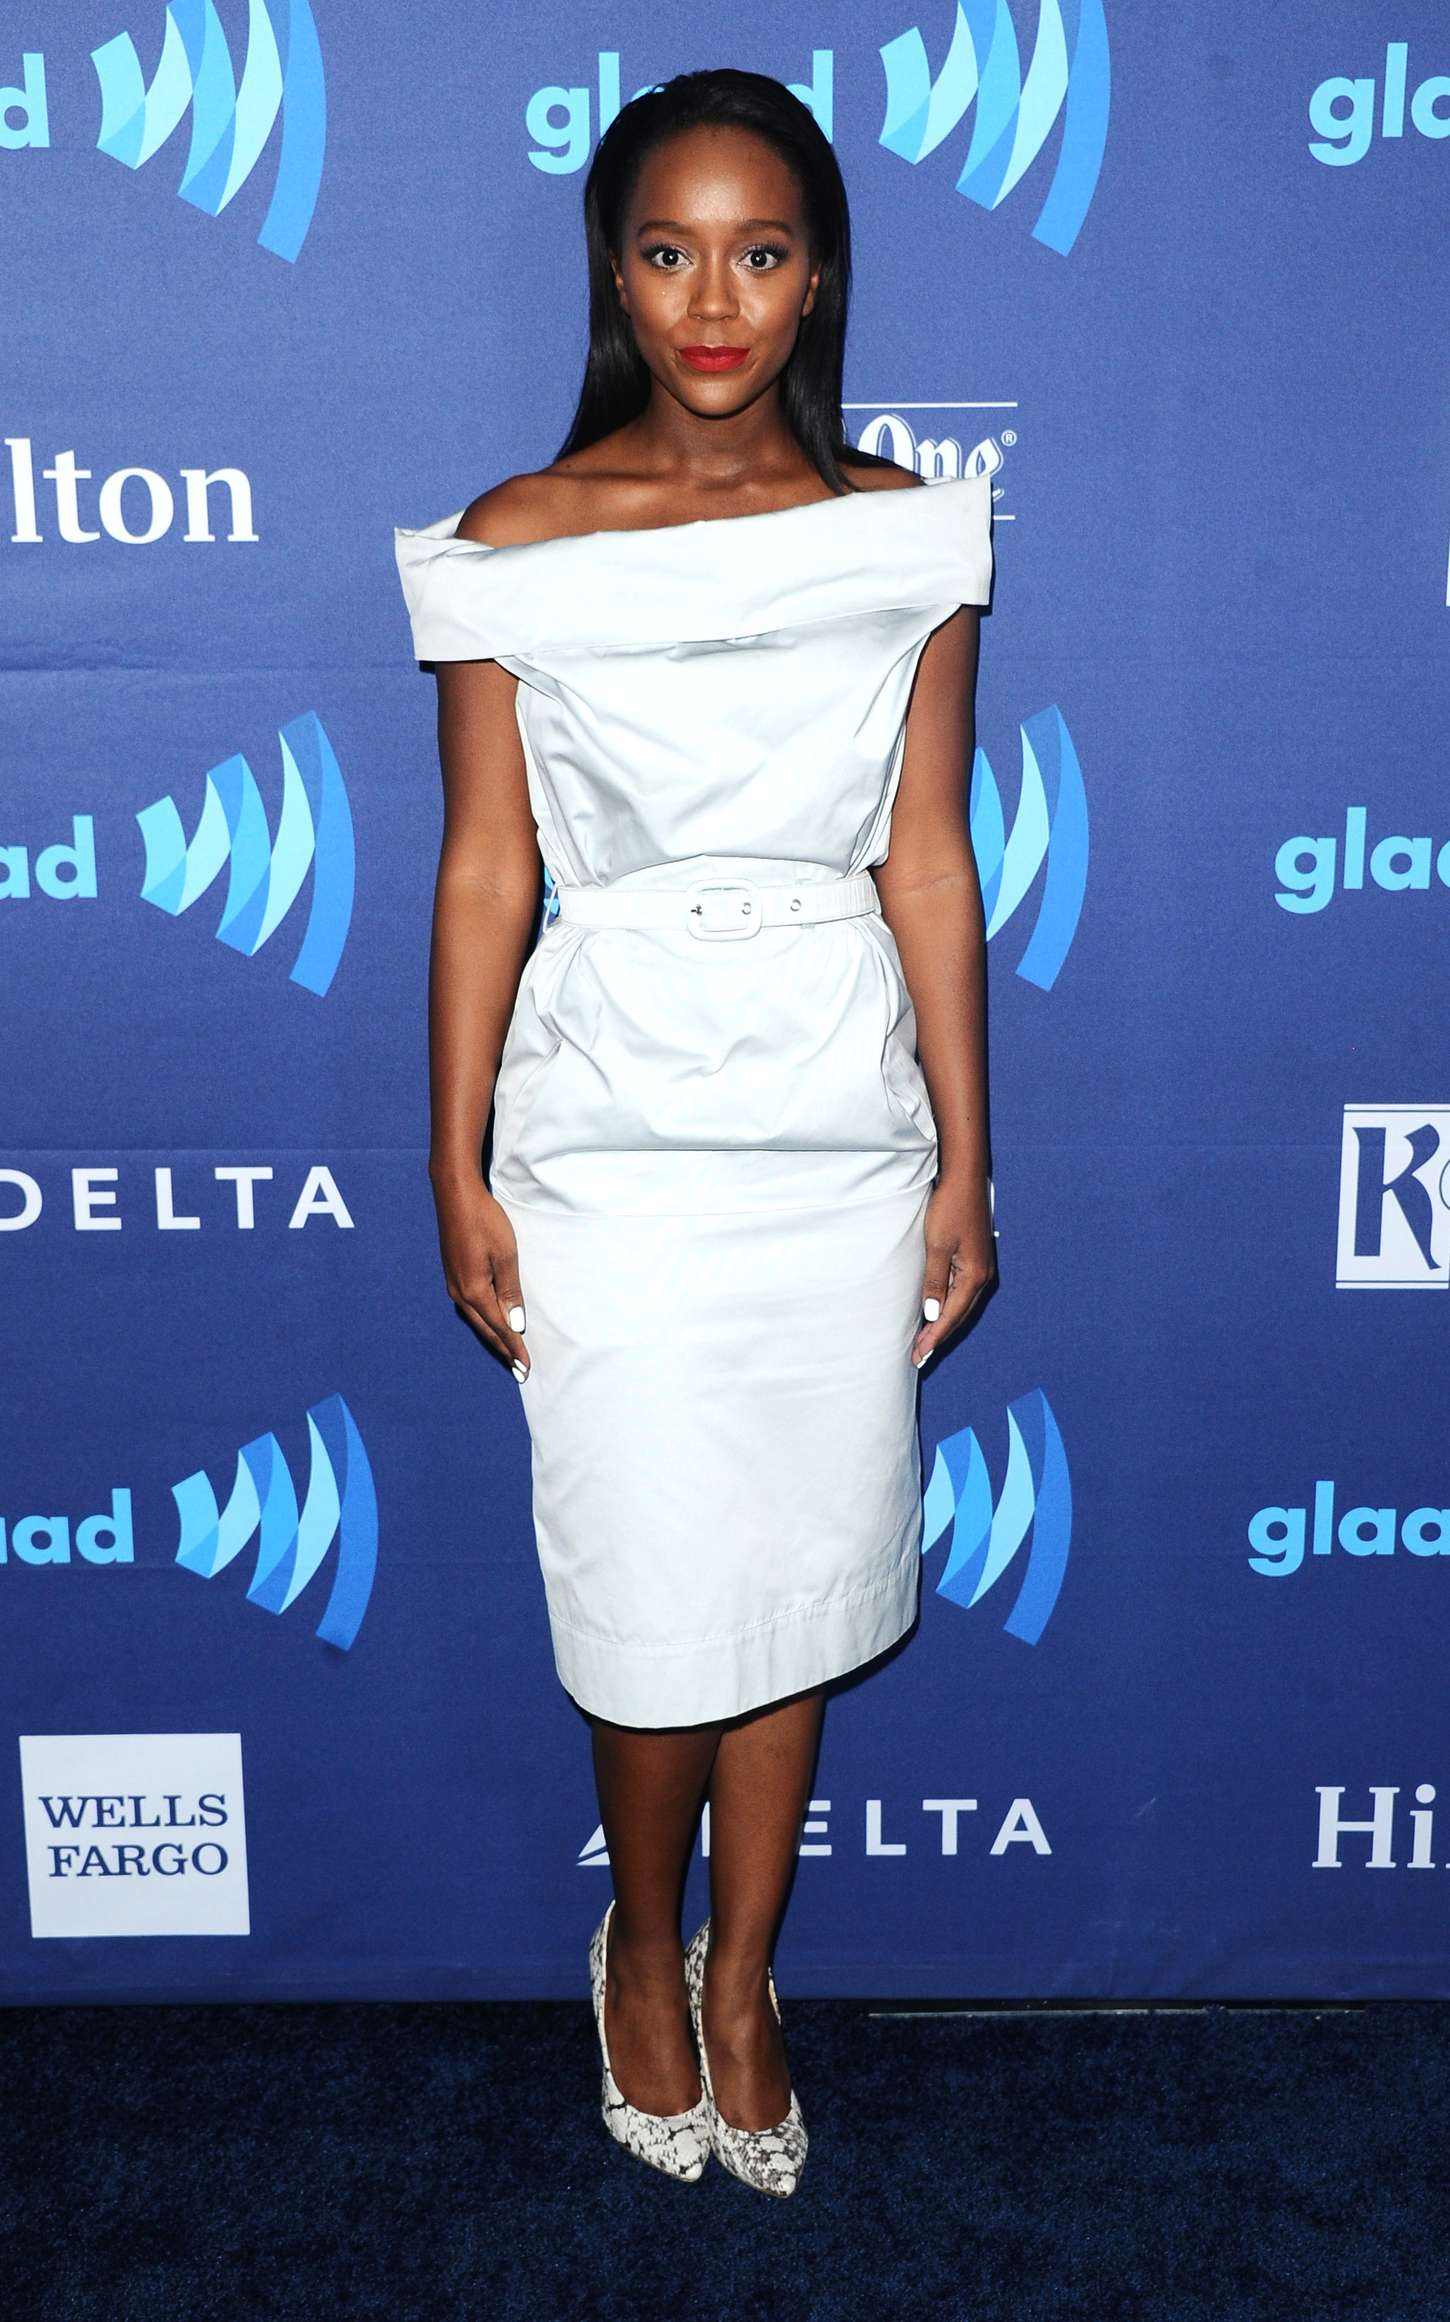 Aja Naomi King Annual GLAAD Media Awards in Beverly Hills